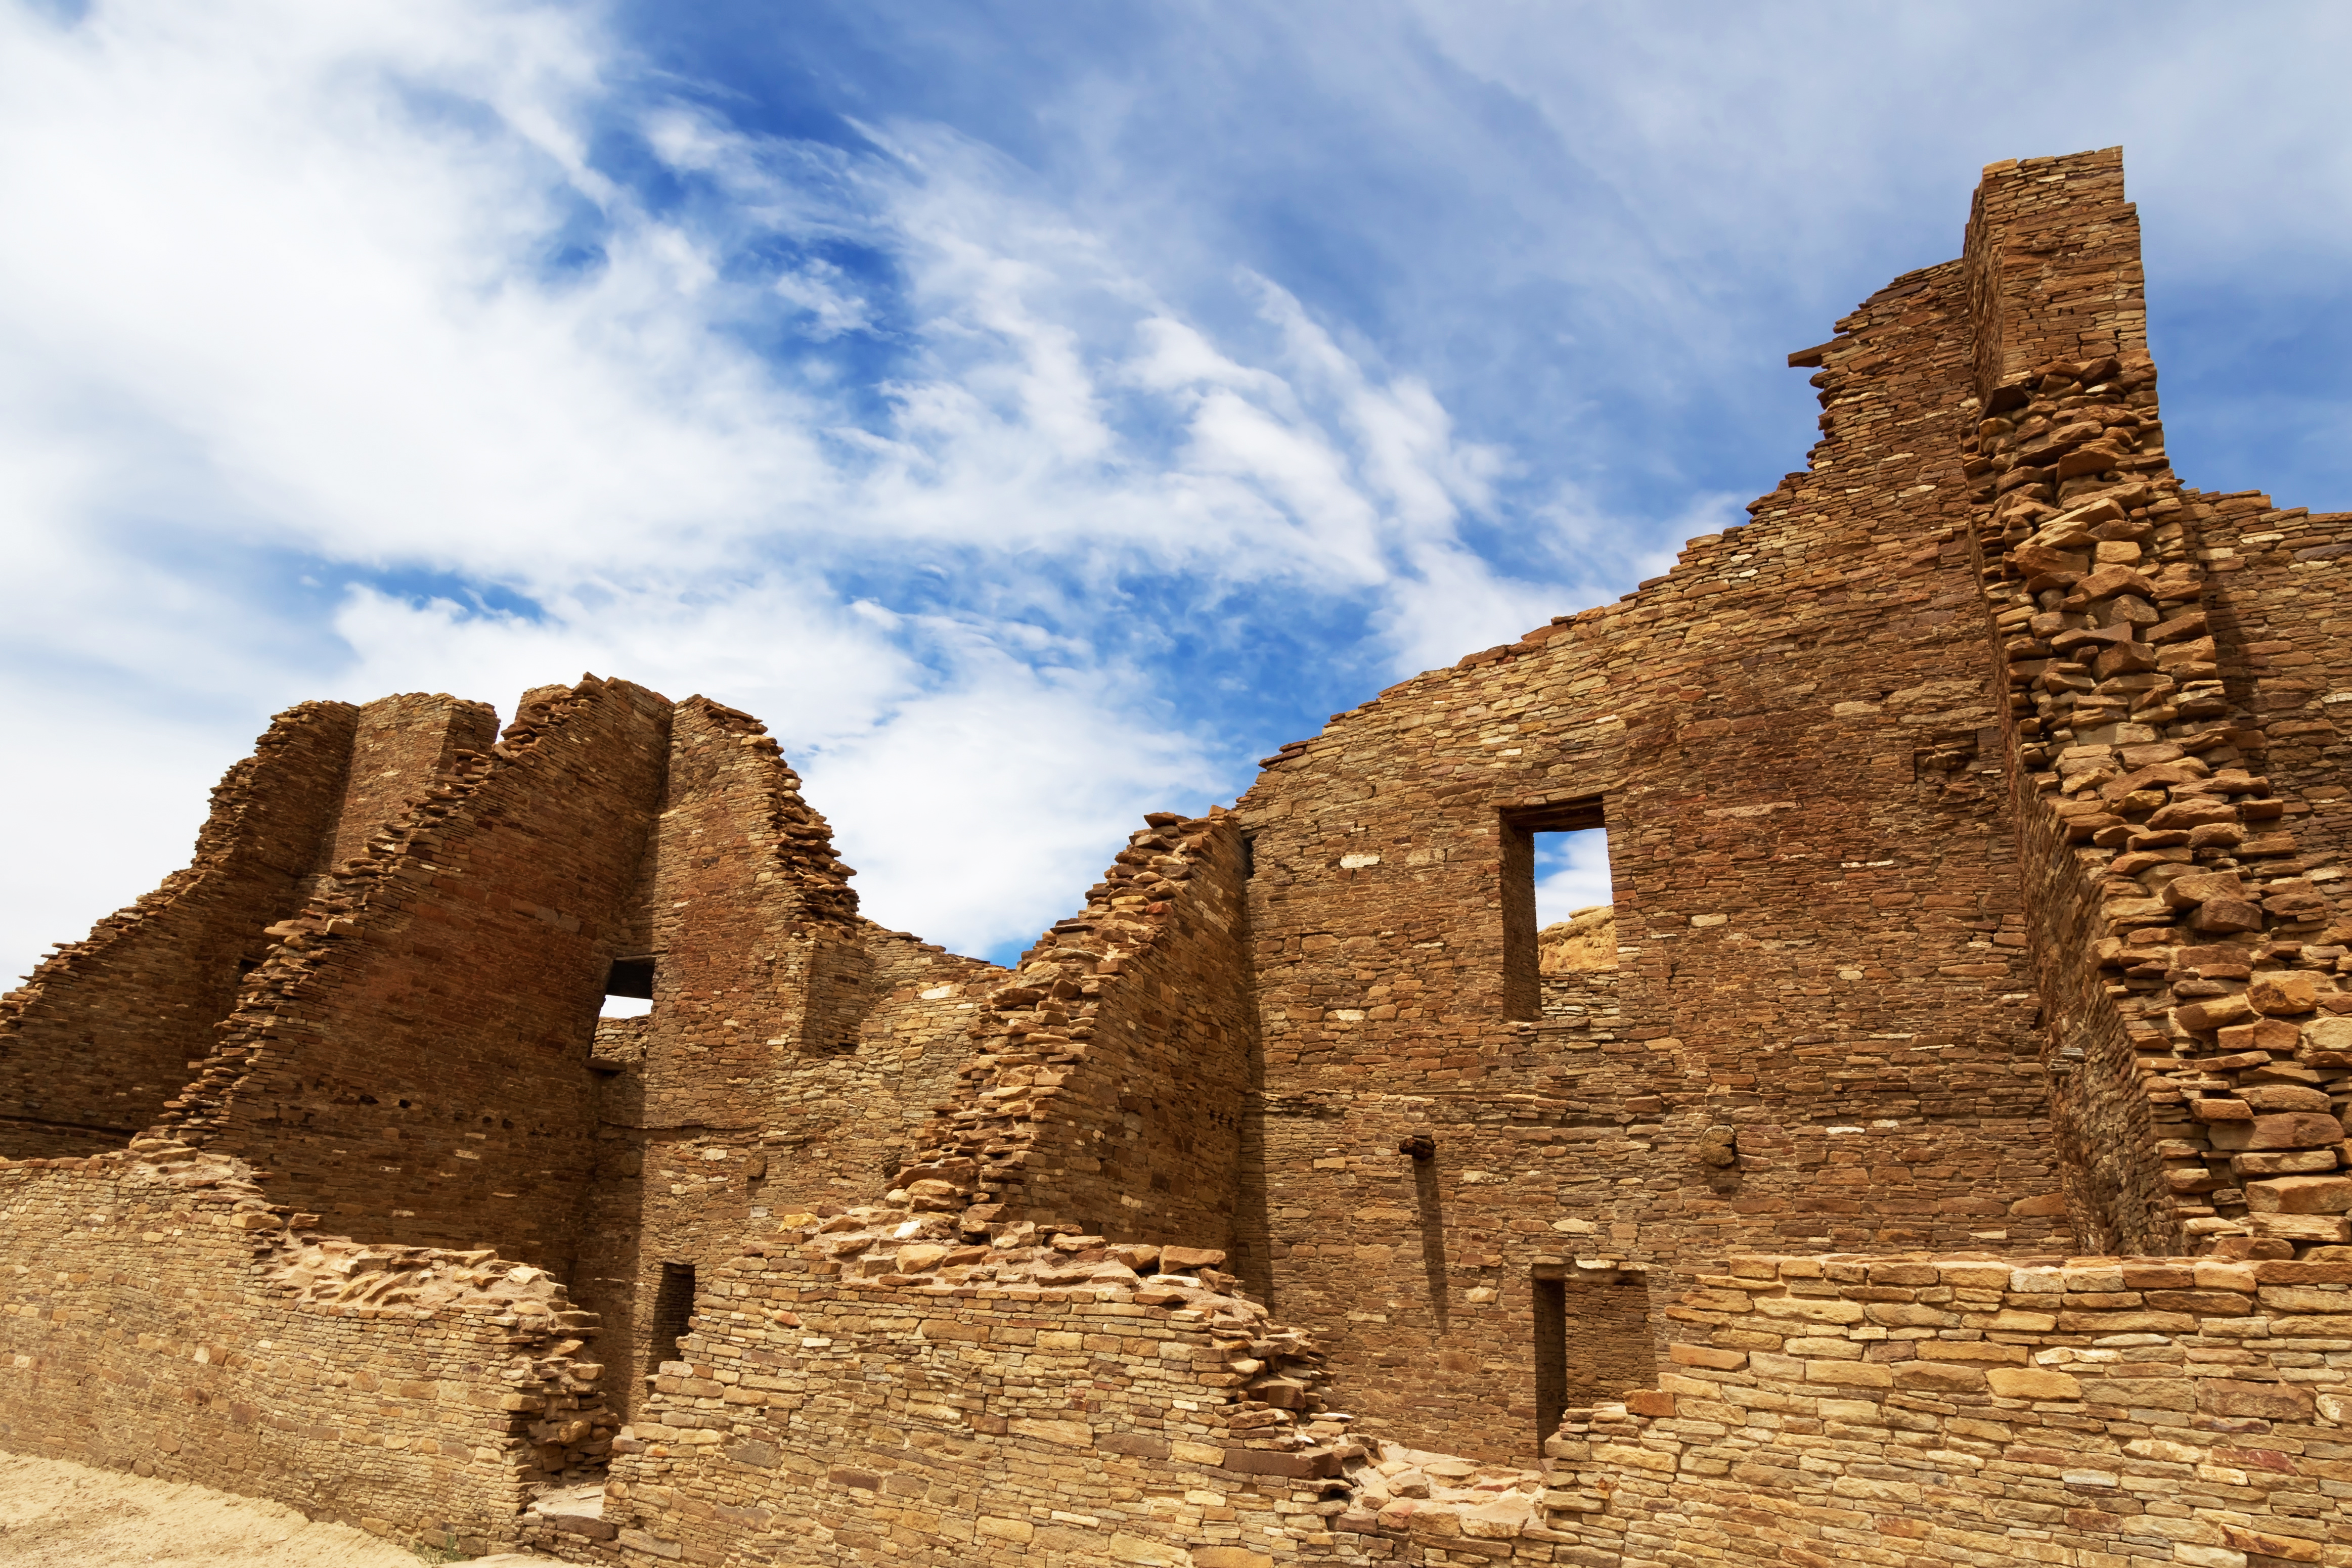 9af27487594d Fracking and drilling near Chaco Canyon challenged by Begaye